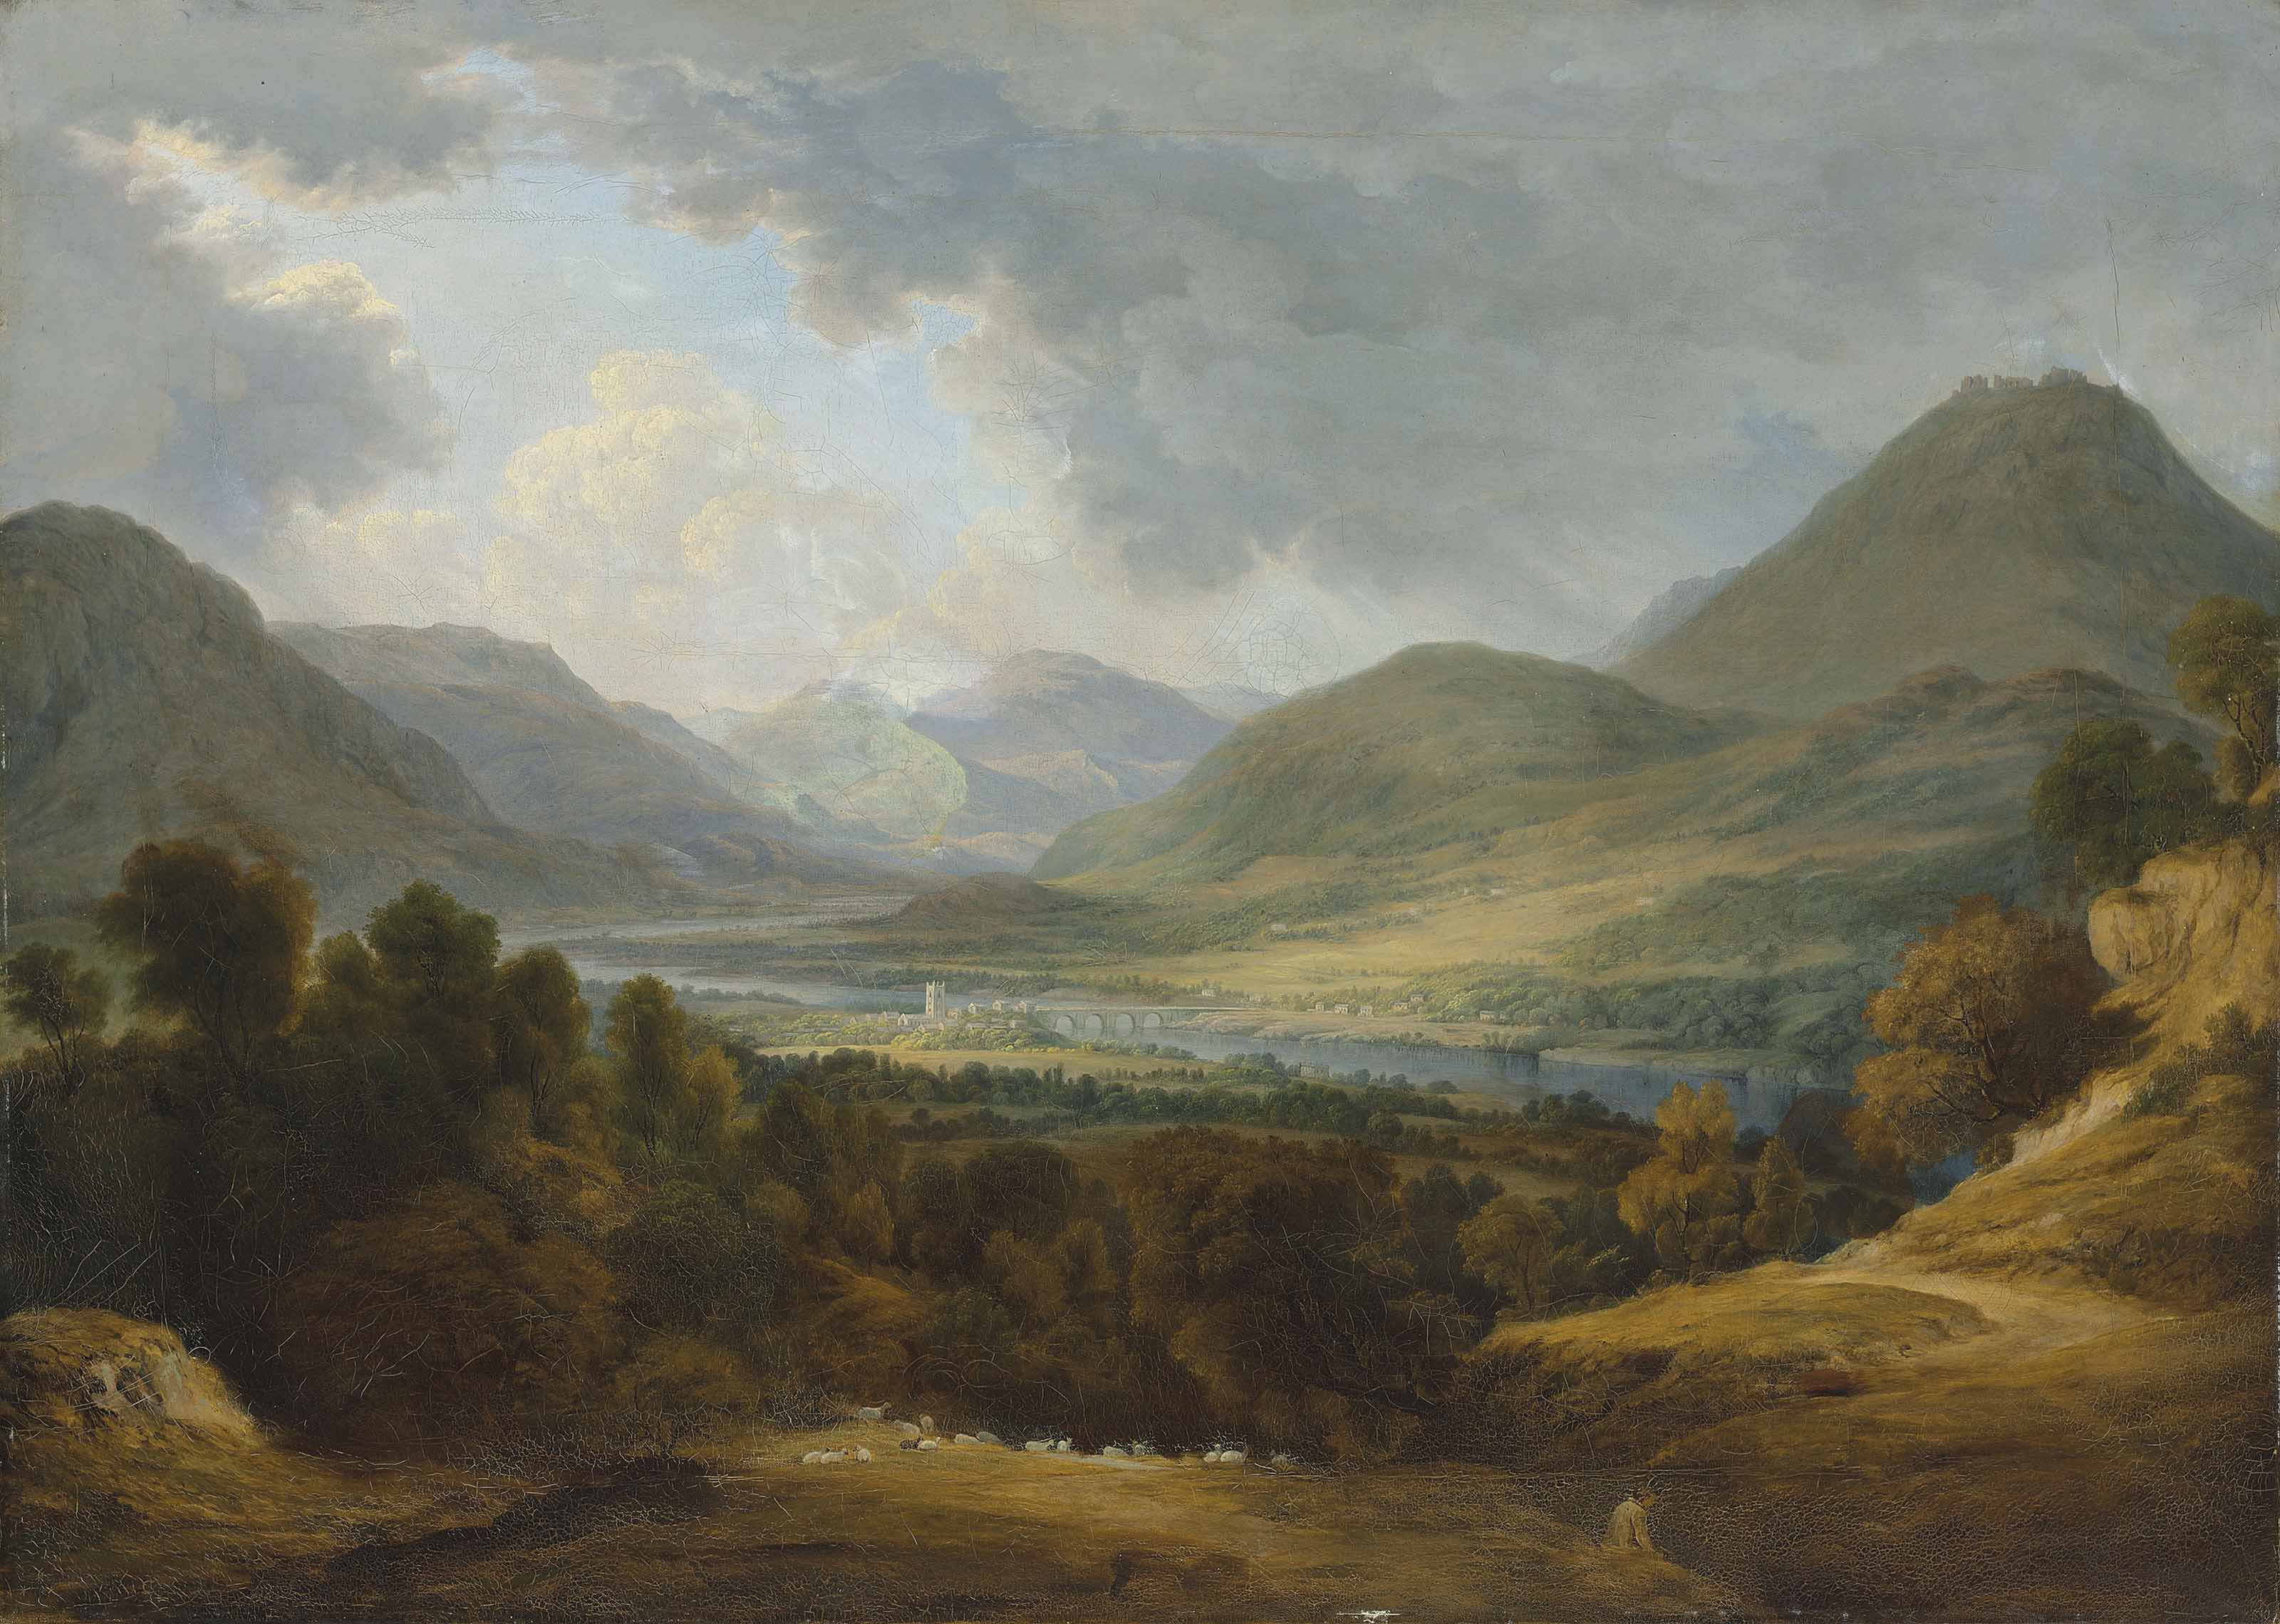 View of Llangollen, Wales